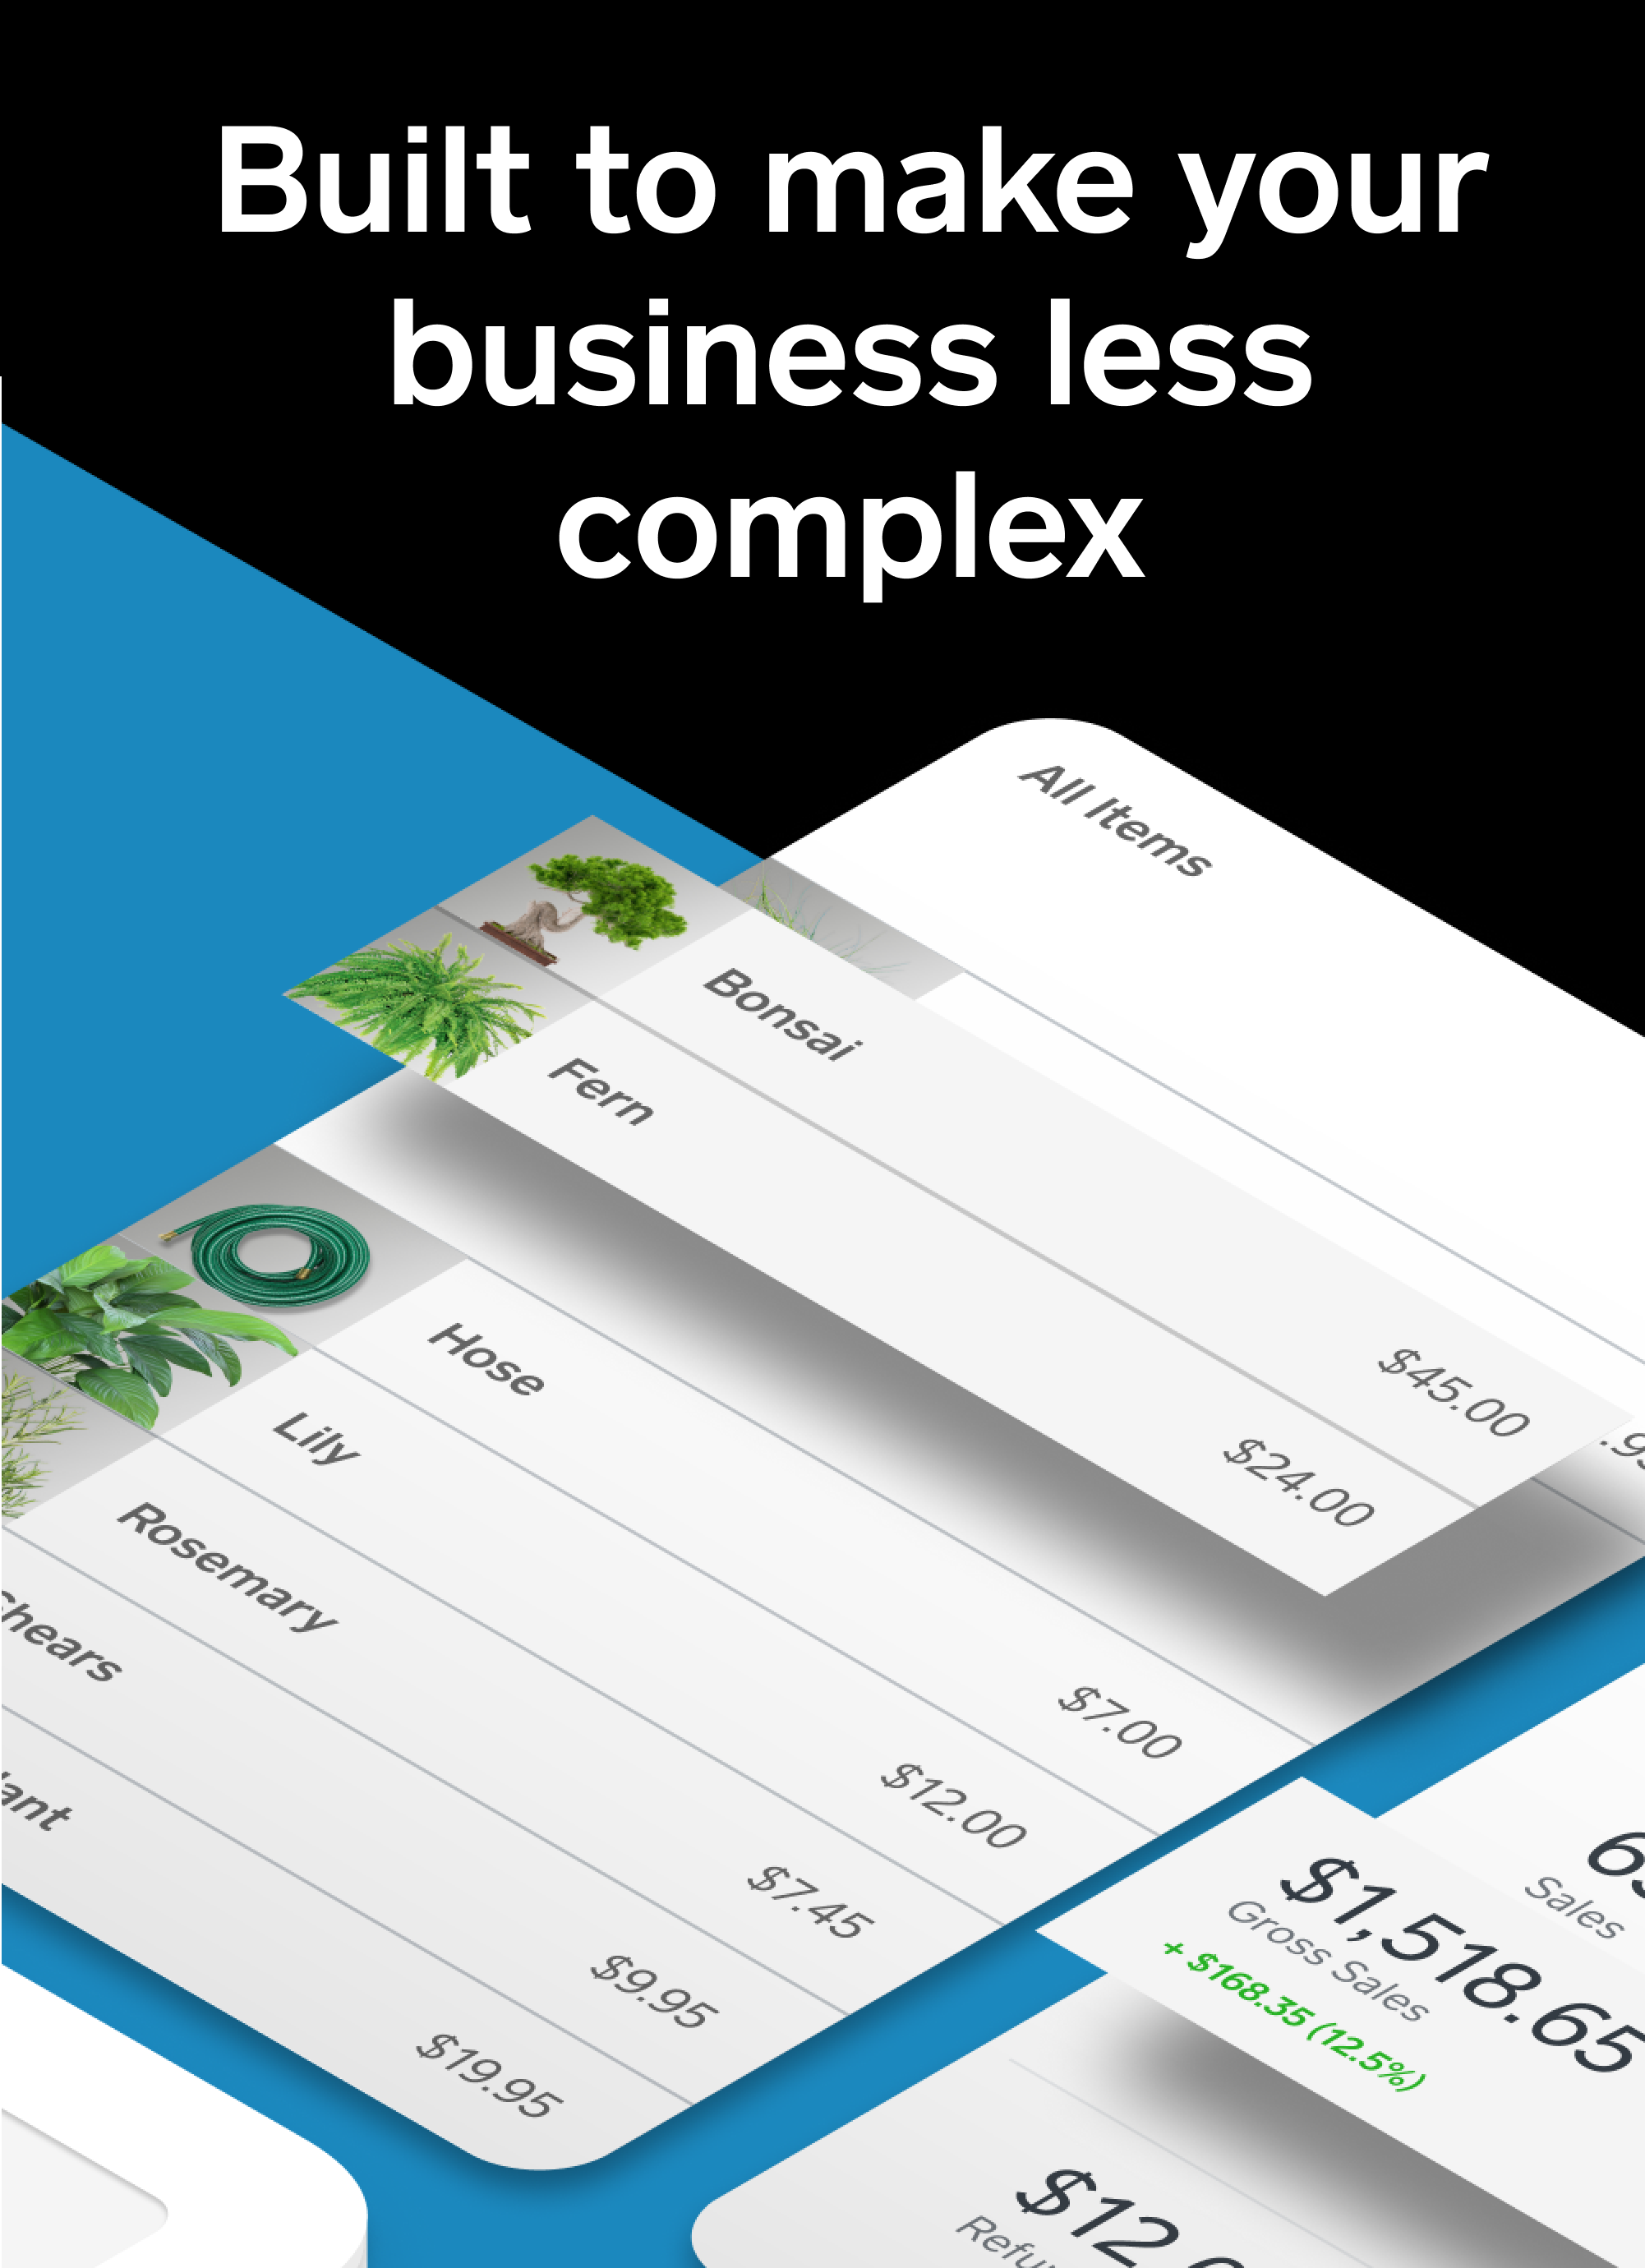 Built to make your business less complex